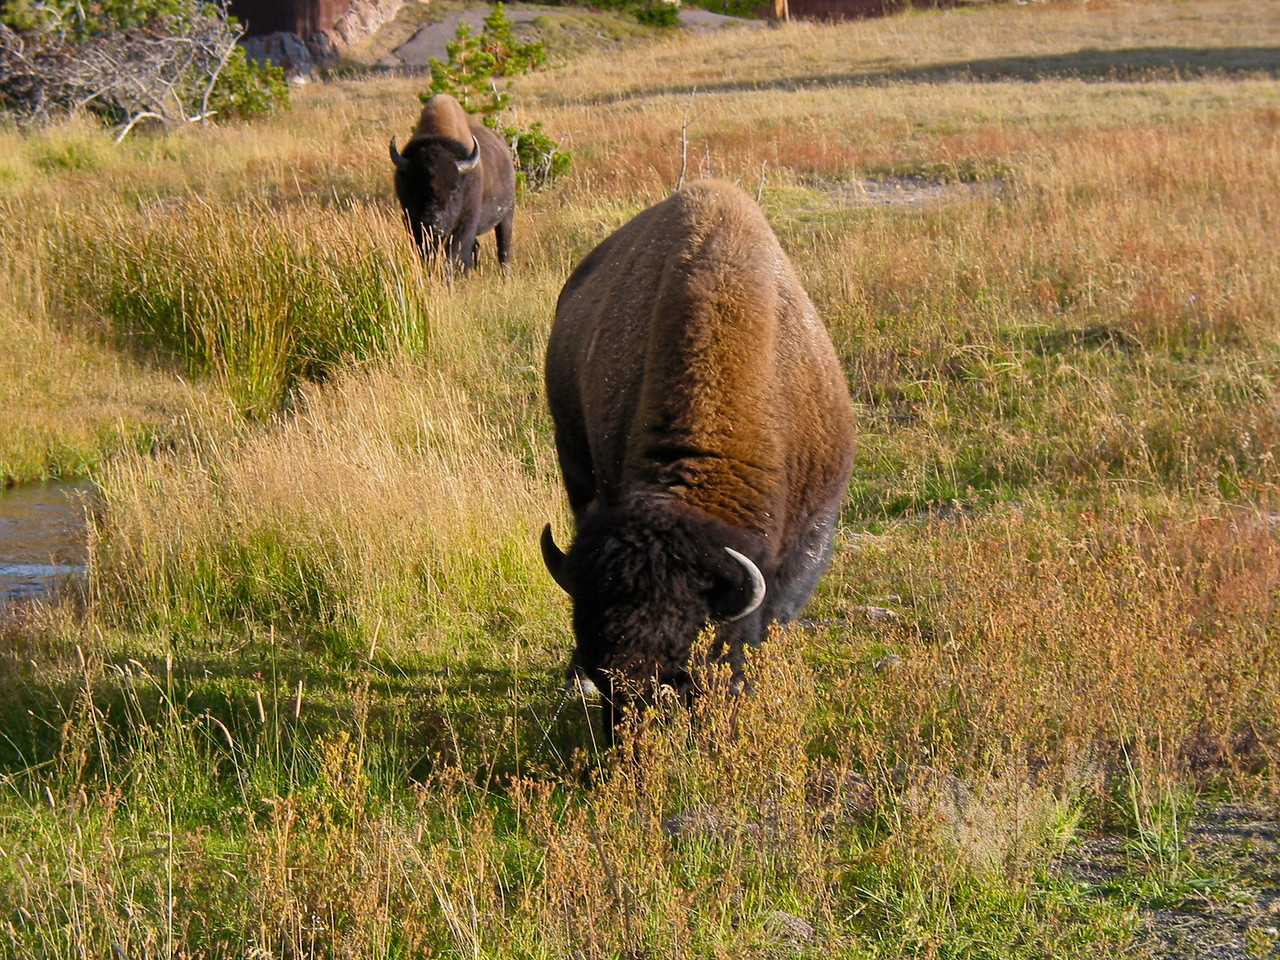 The Yellowstone Park Bison Herd is the largest public herd of American Bison in the United States.  Bison once numbered between 30 and 60 million individuals throughout North America, and Yellowstone remains one of their last strongholds. Their populations had increased from less than 50 in the park in 1902 to 4,000 by 2003. It reached a peak in 2005 with 4,900 animals. The number dropped to 3,000 in 2008 after a harsh winter and controversial brucellosis management sending hundreds to slaughter. The Yellowstone Park Bison Herd is believed to be one of only four free roaming and genetically pure herds on public lands in North America.